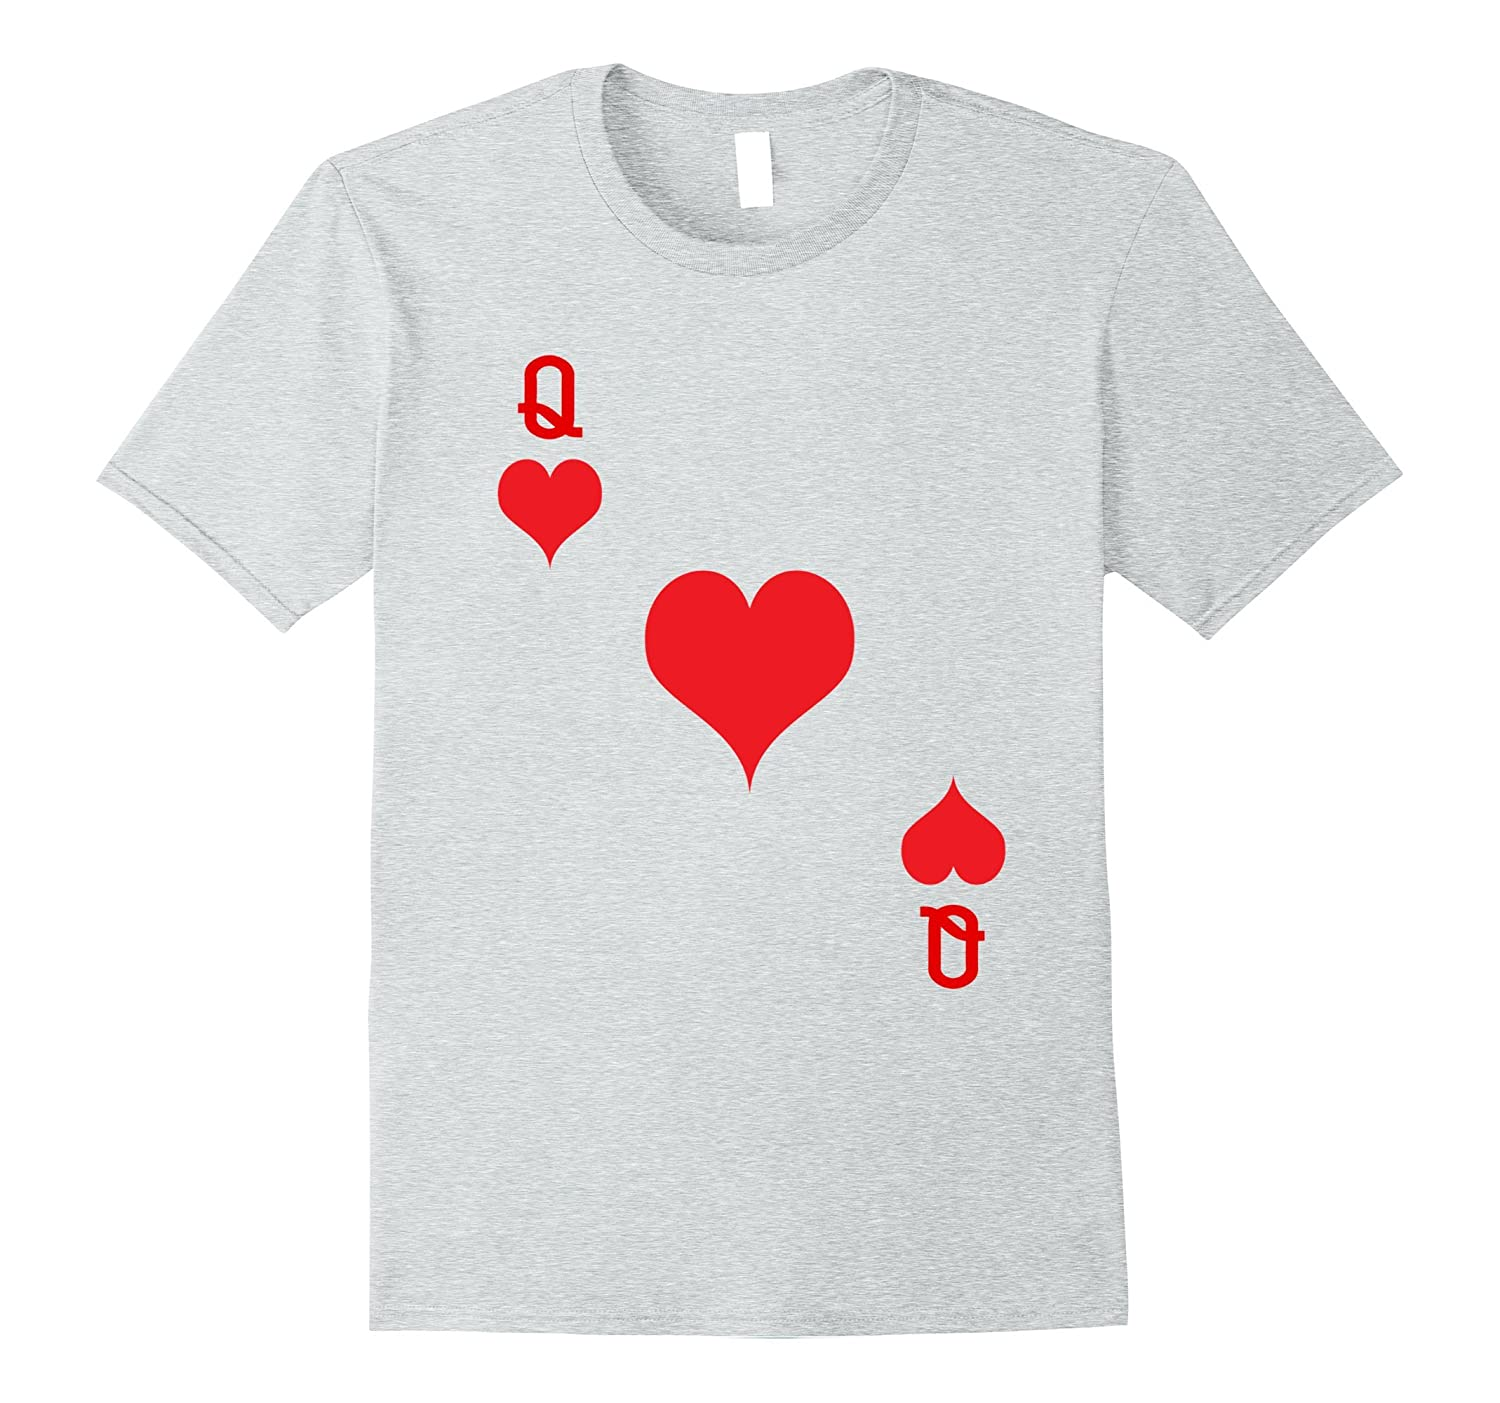 Queen Of Hearts T-Shirt Playing Card Tee | Halloween Costume-FL